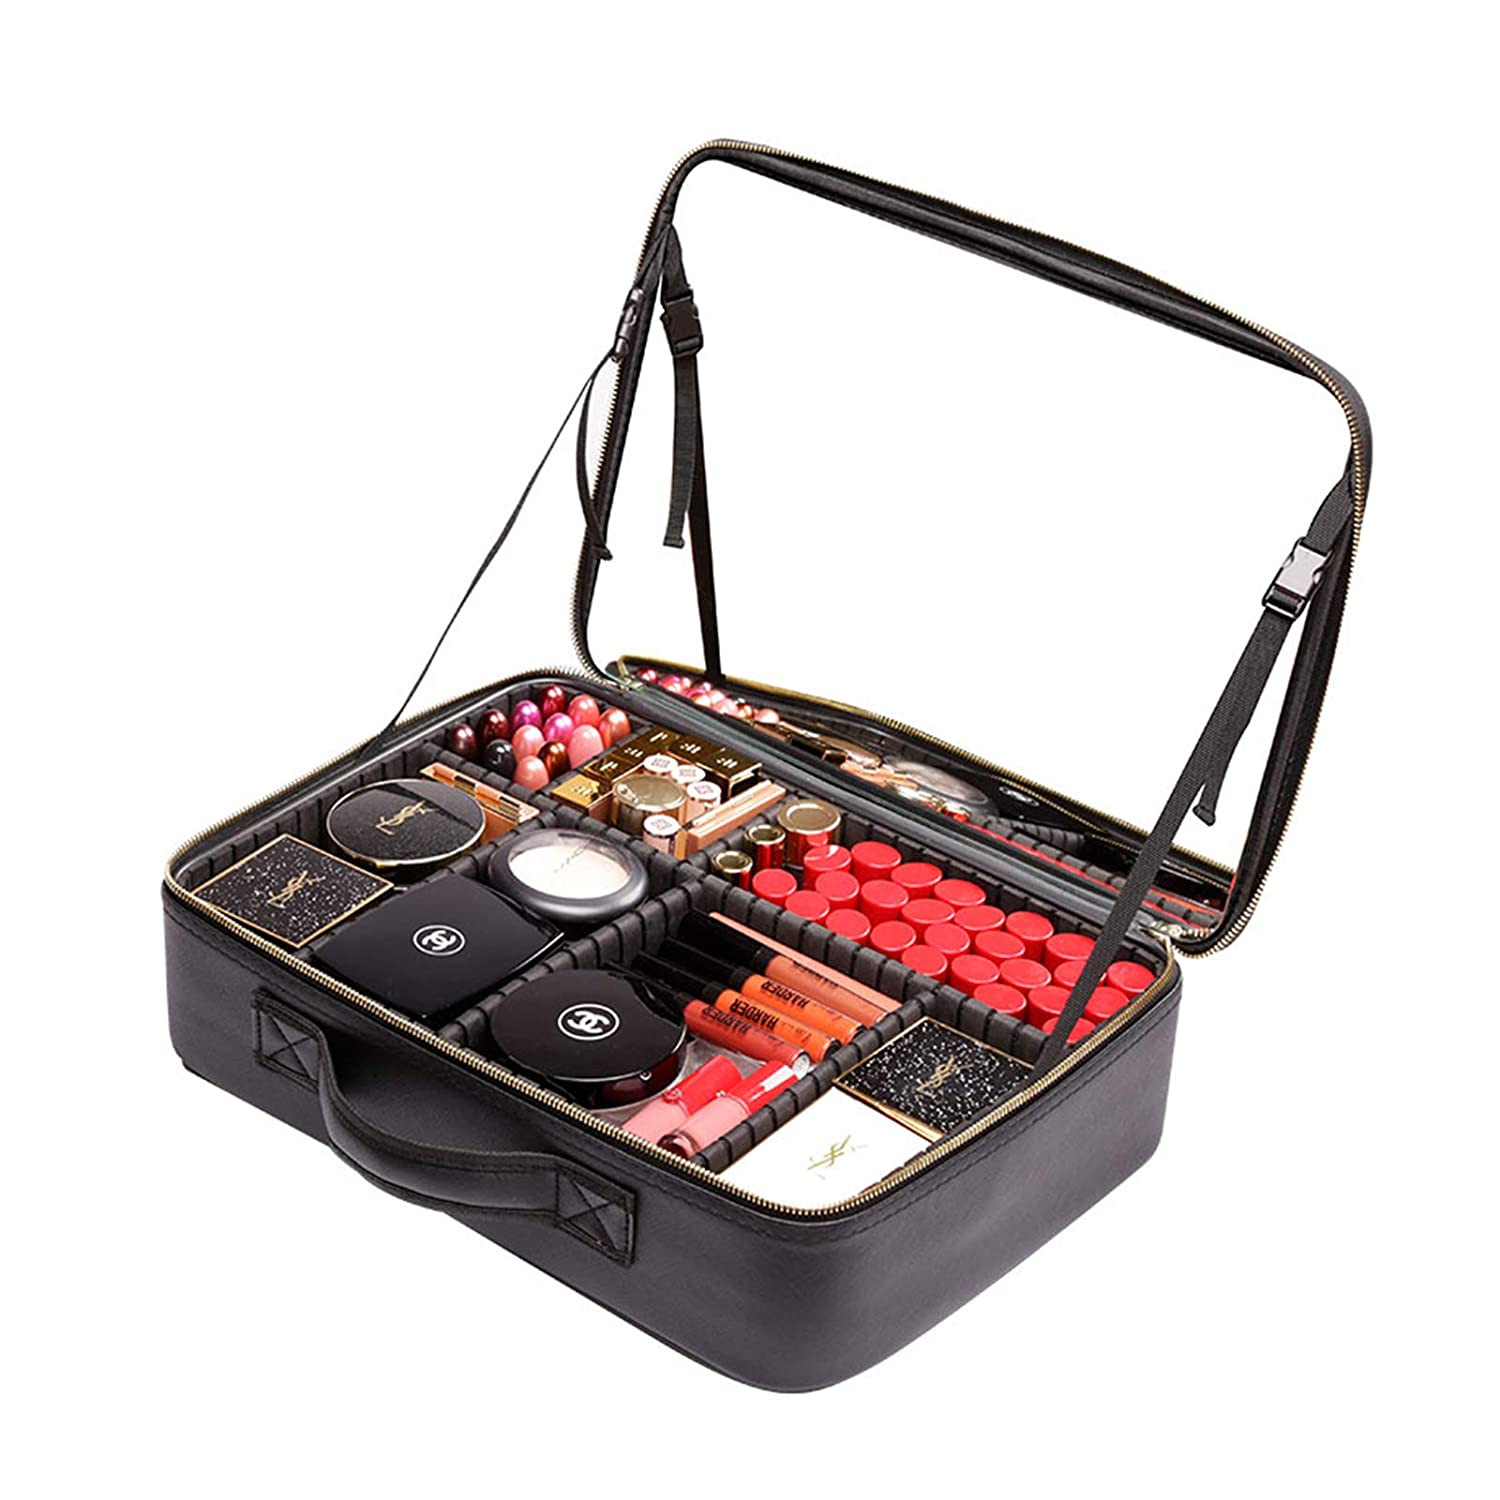 Rownyeon Makeup Train Case with Mirror Portable 14.5inch Cosmetic Organizer Professional Makeup Bag with Adjustable Dividers for Cosmetics Makeup Brushes and Toiletry Jewelry Digital Accessories